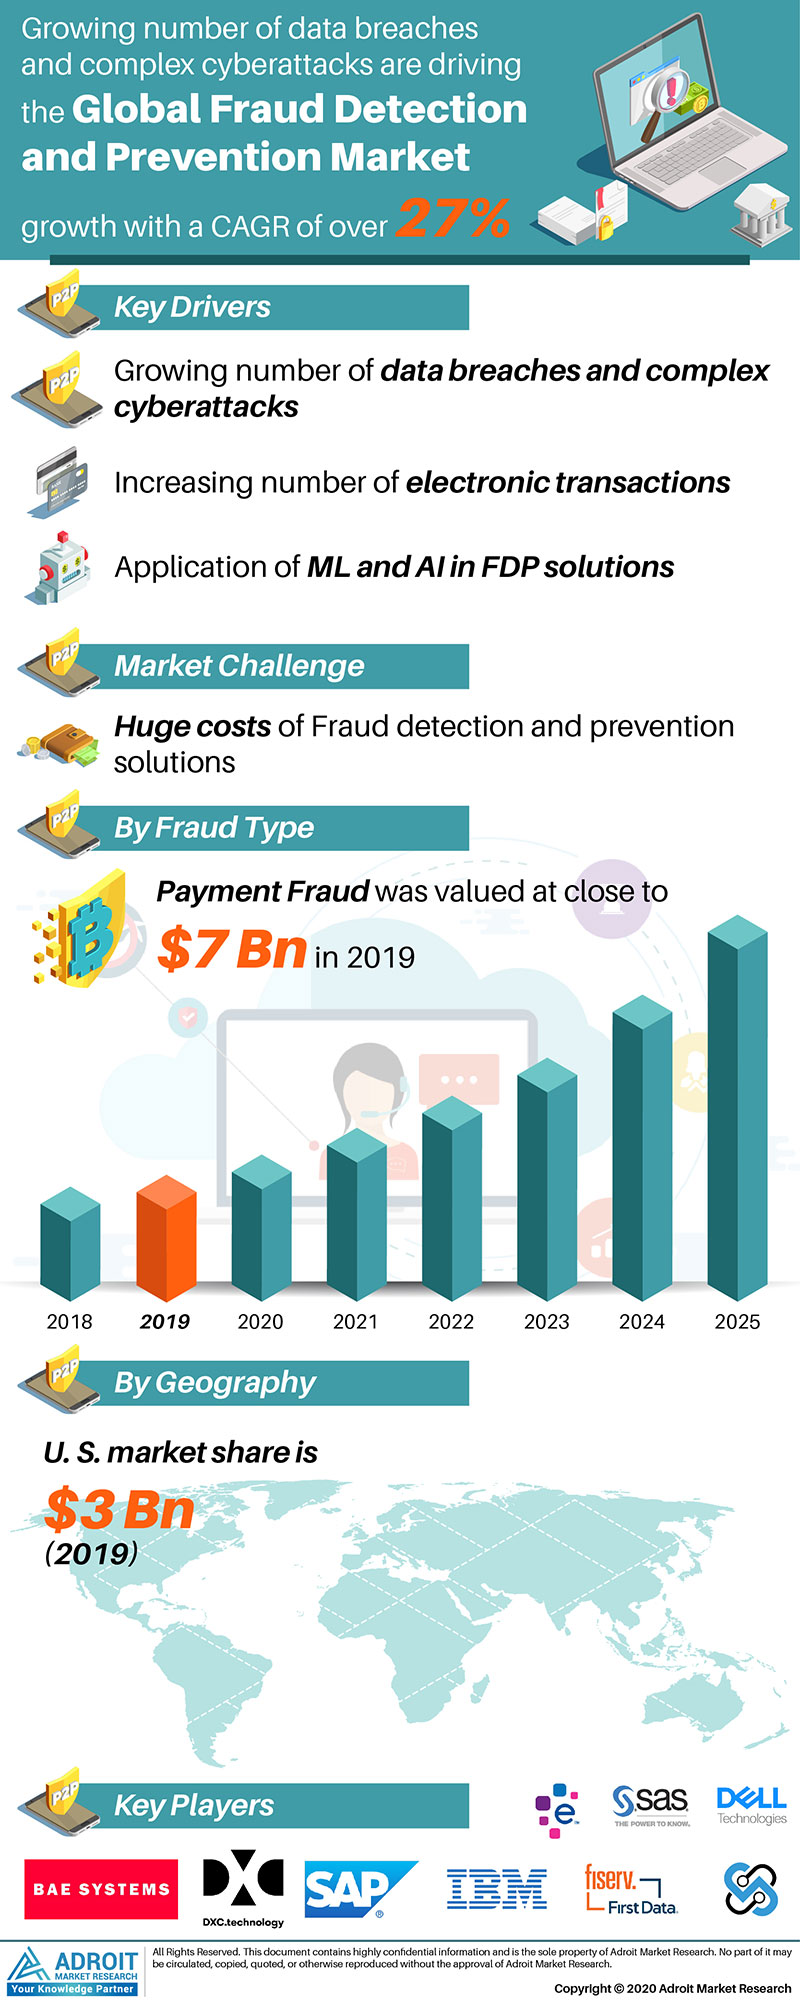 Global Fraud Detection and Prevention Market Size 2018 By Product Type, Formulation, End-user, Region and Forecast 2019 to 2025